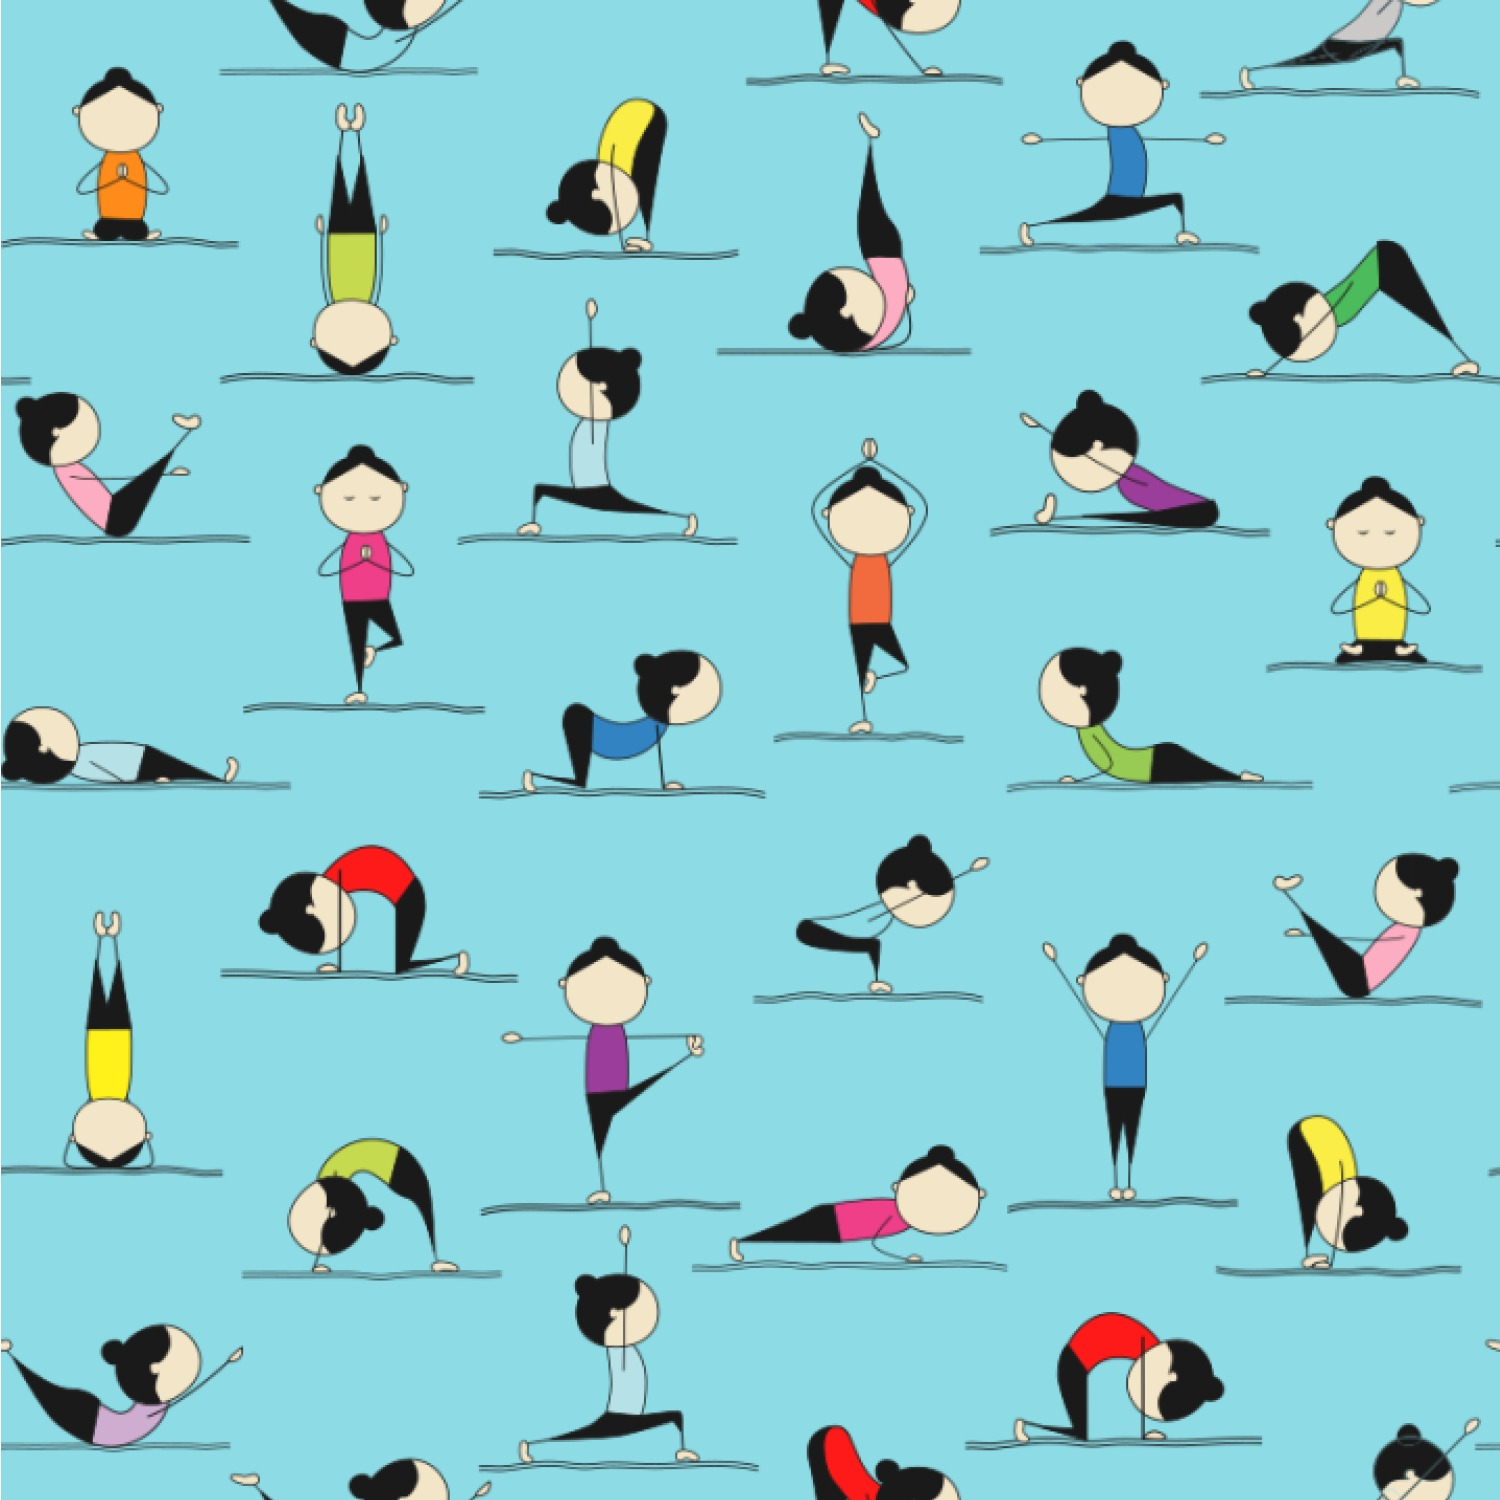 Yoga Poses Wallpaper Amp Surface Covering You Customize It